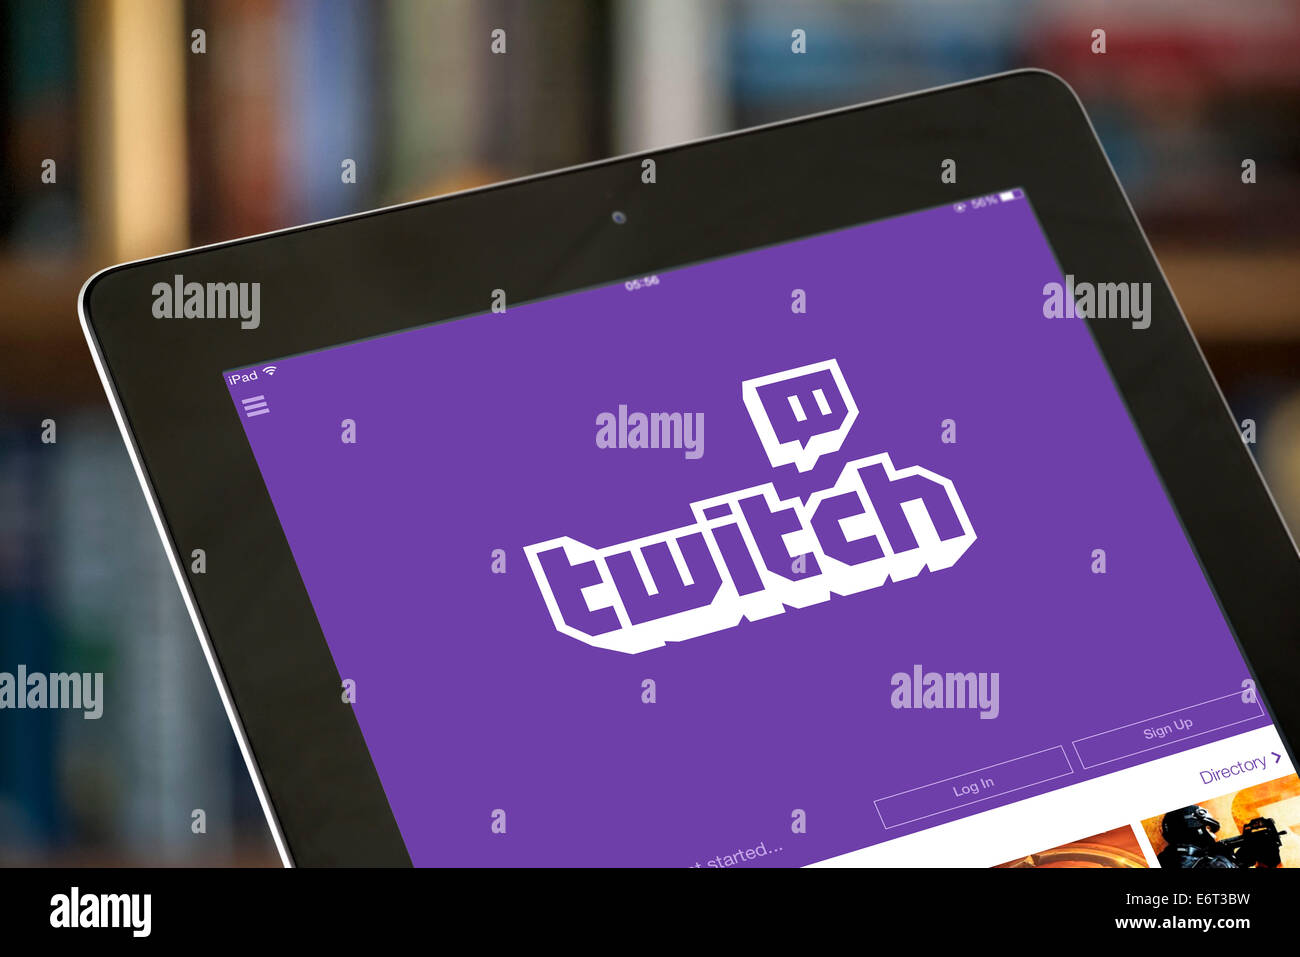 Il video streaming gaming app Twitch, visto su un ipad di Apple Immagini Stock